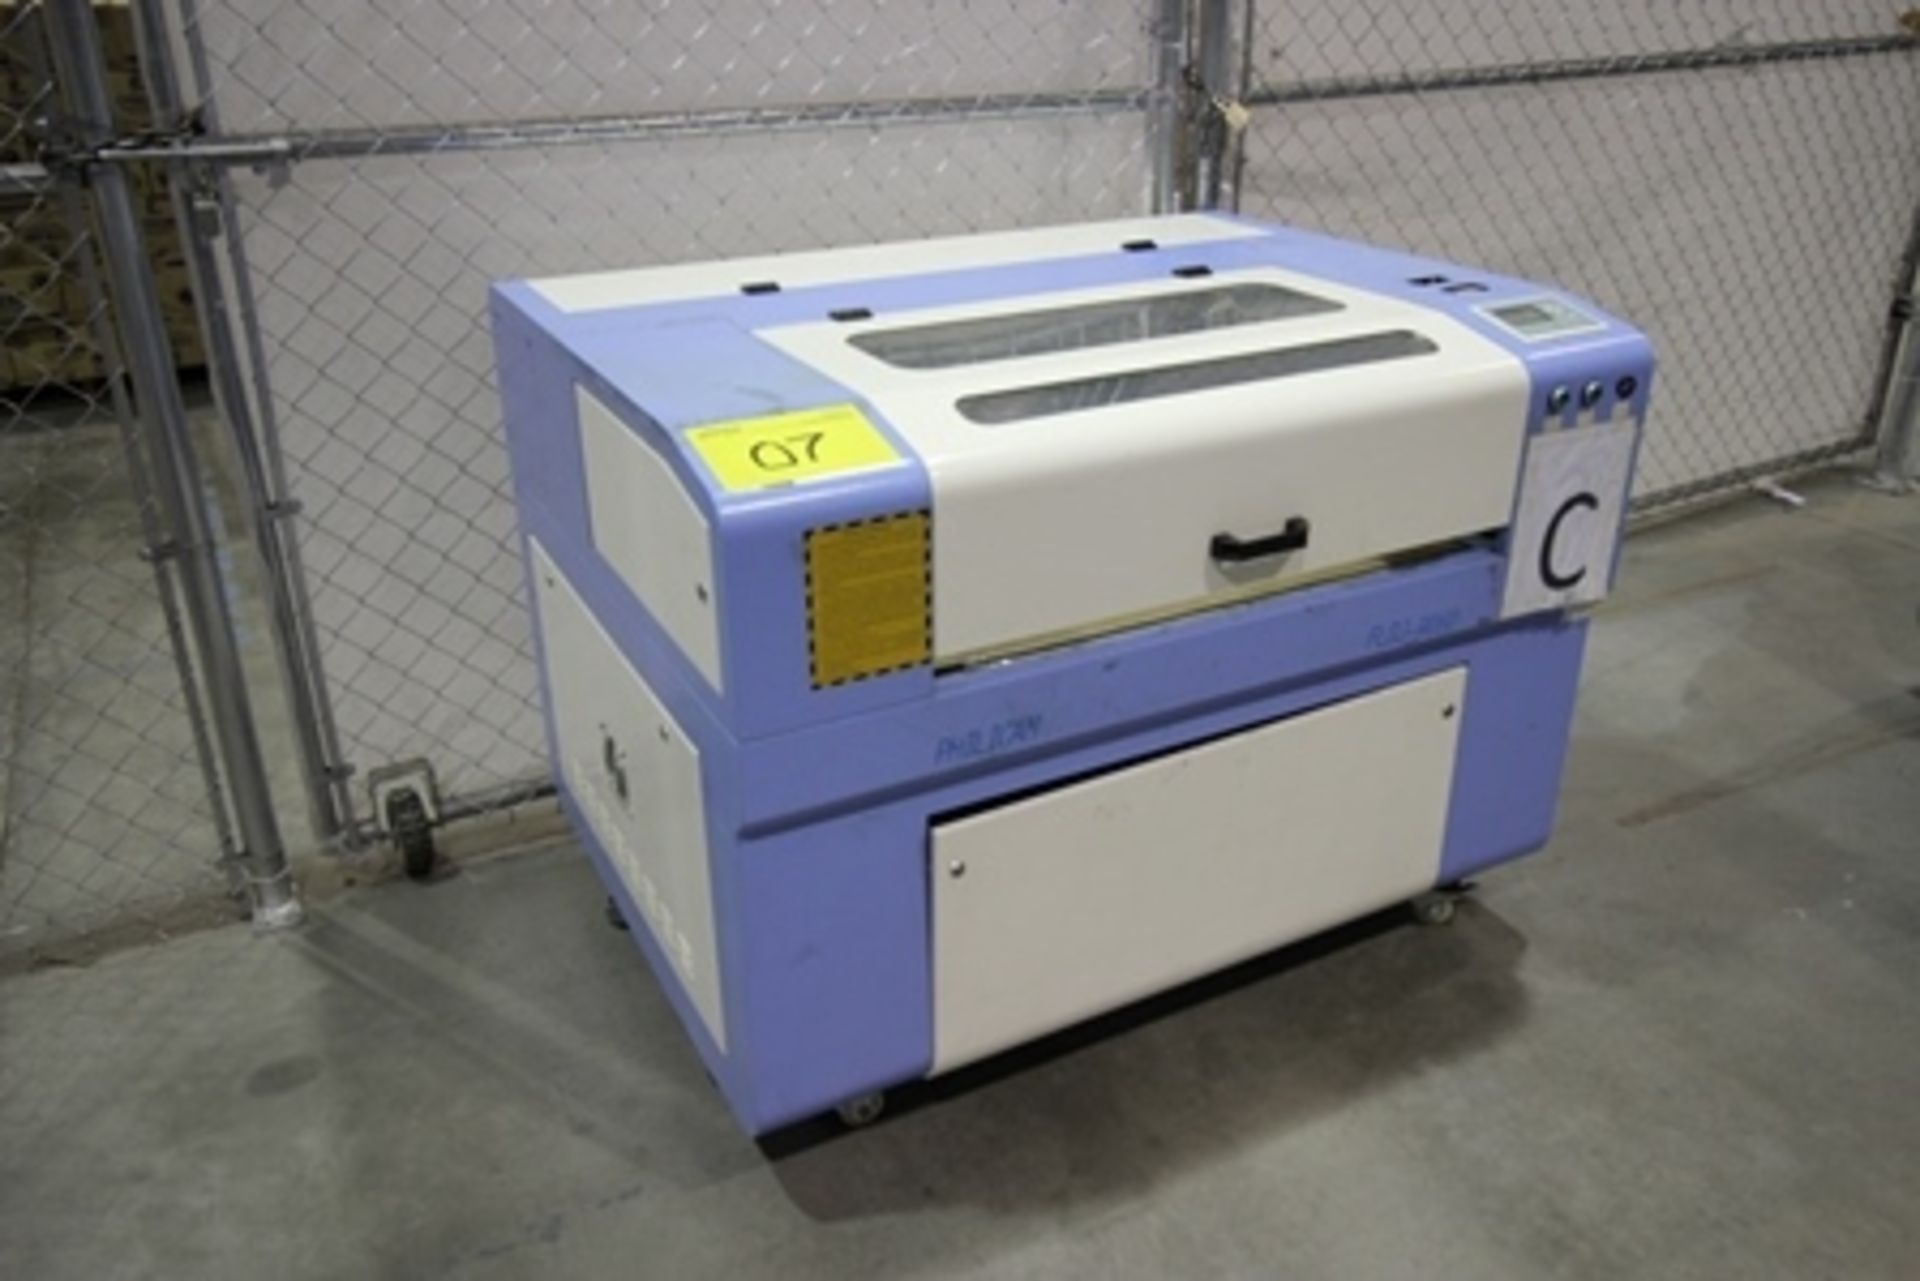 Lot 7 - 2016 Phillican CO2 laser engraver and cutting machine, model 6090.